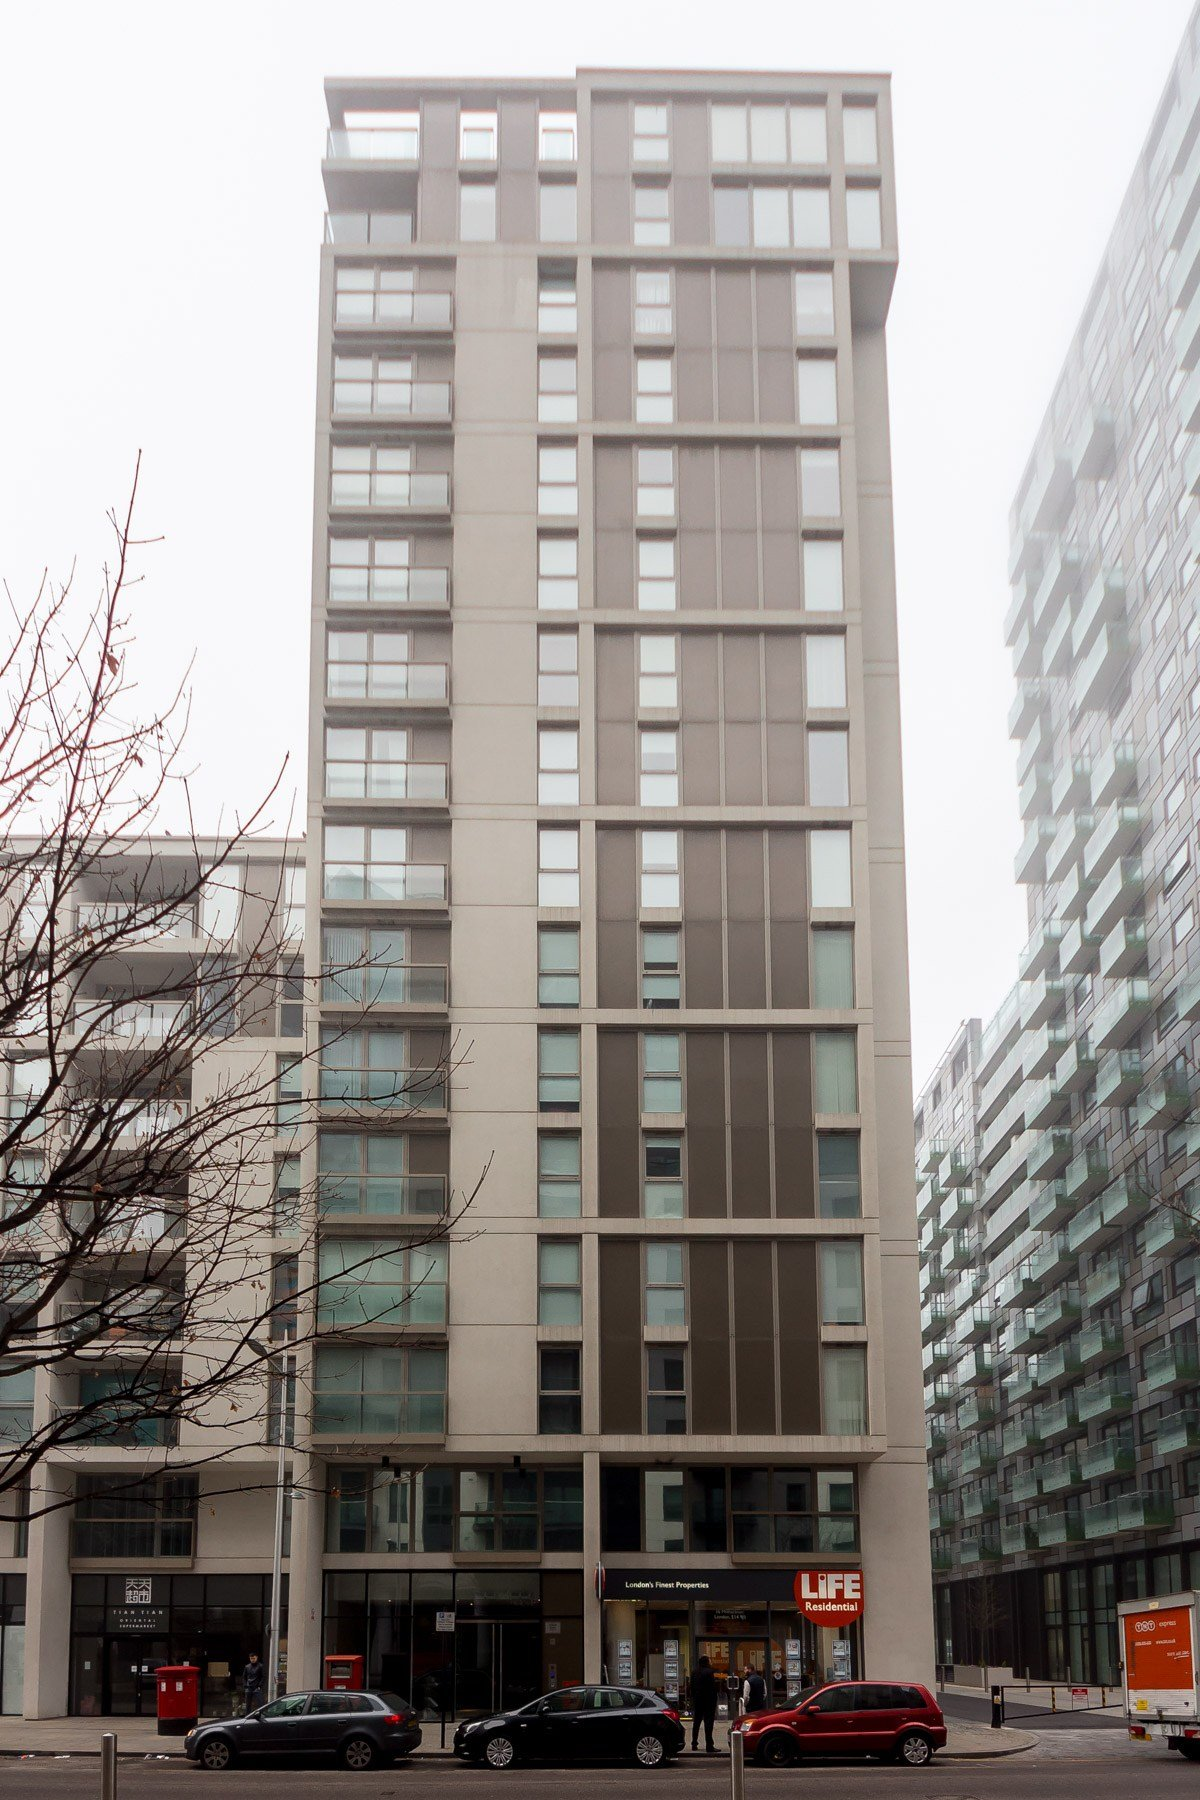 Best 1 Bedroom Flat To Rent In Millharbour Canary Wharf E14 With Pictures Original 1024 x 768